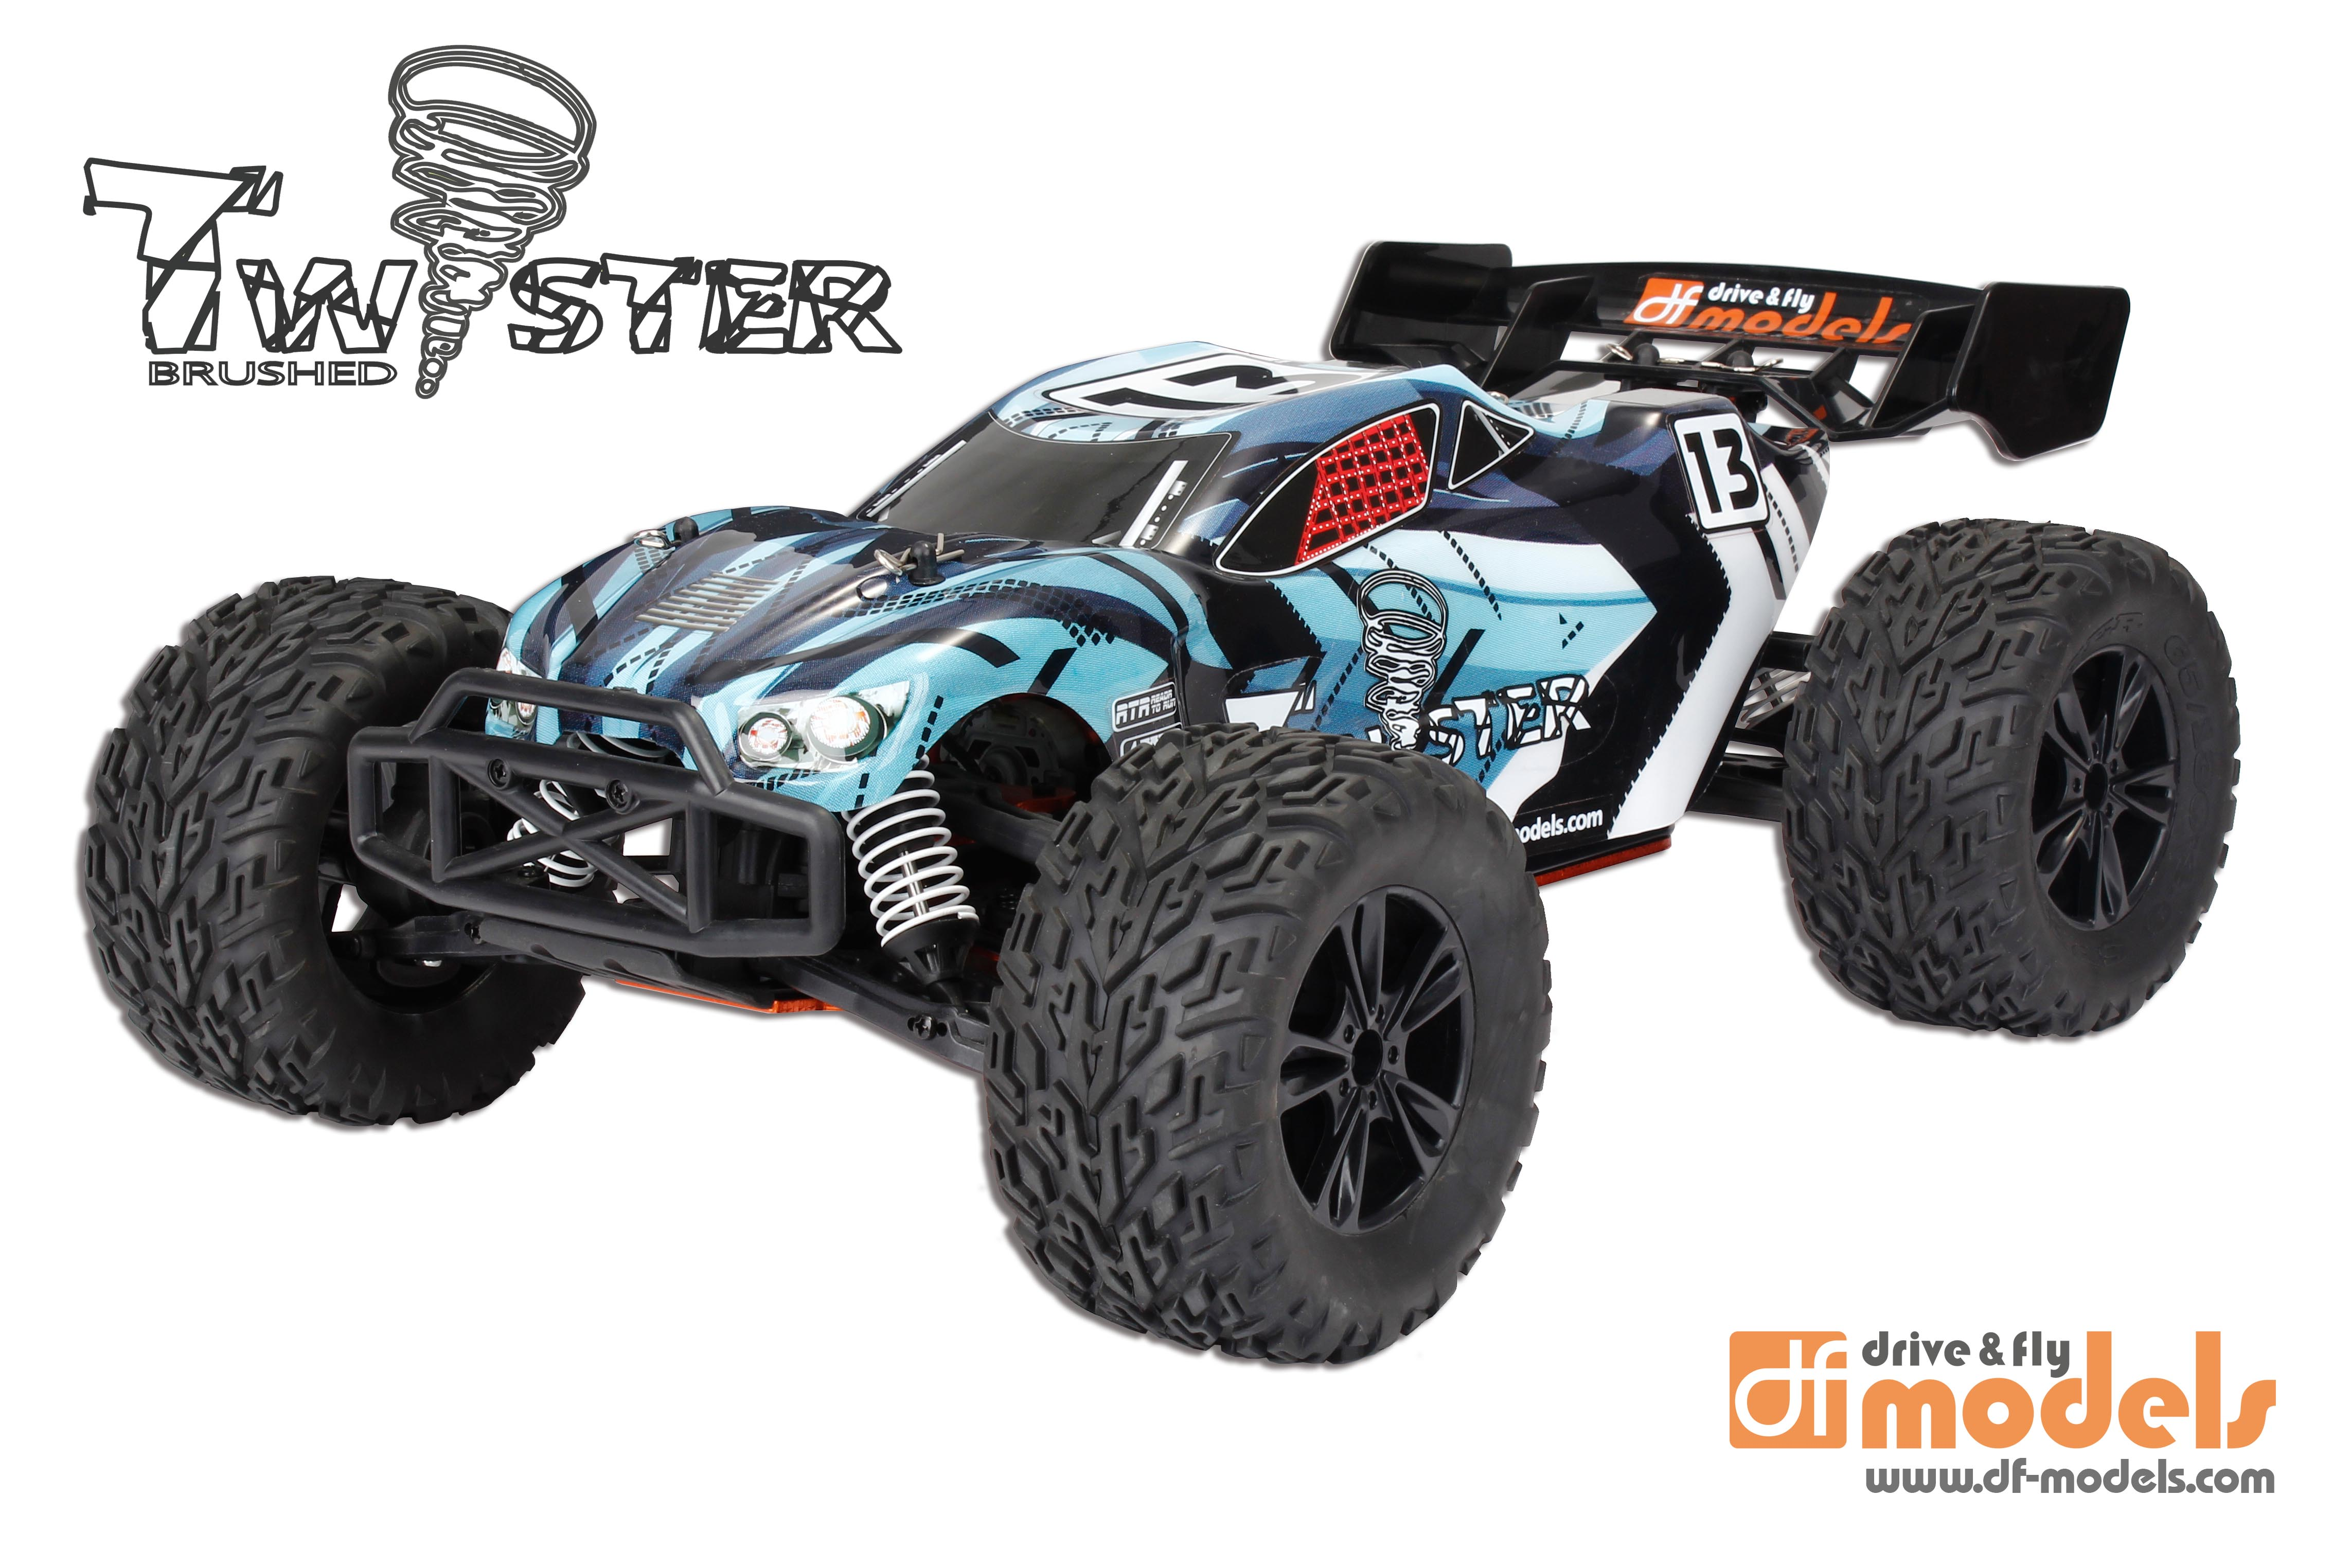 TWISTER Truggy 1:10XL RTR Brushed